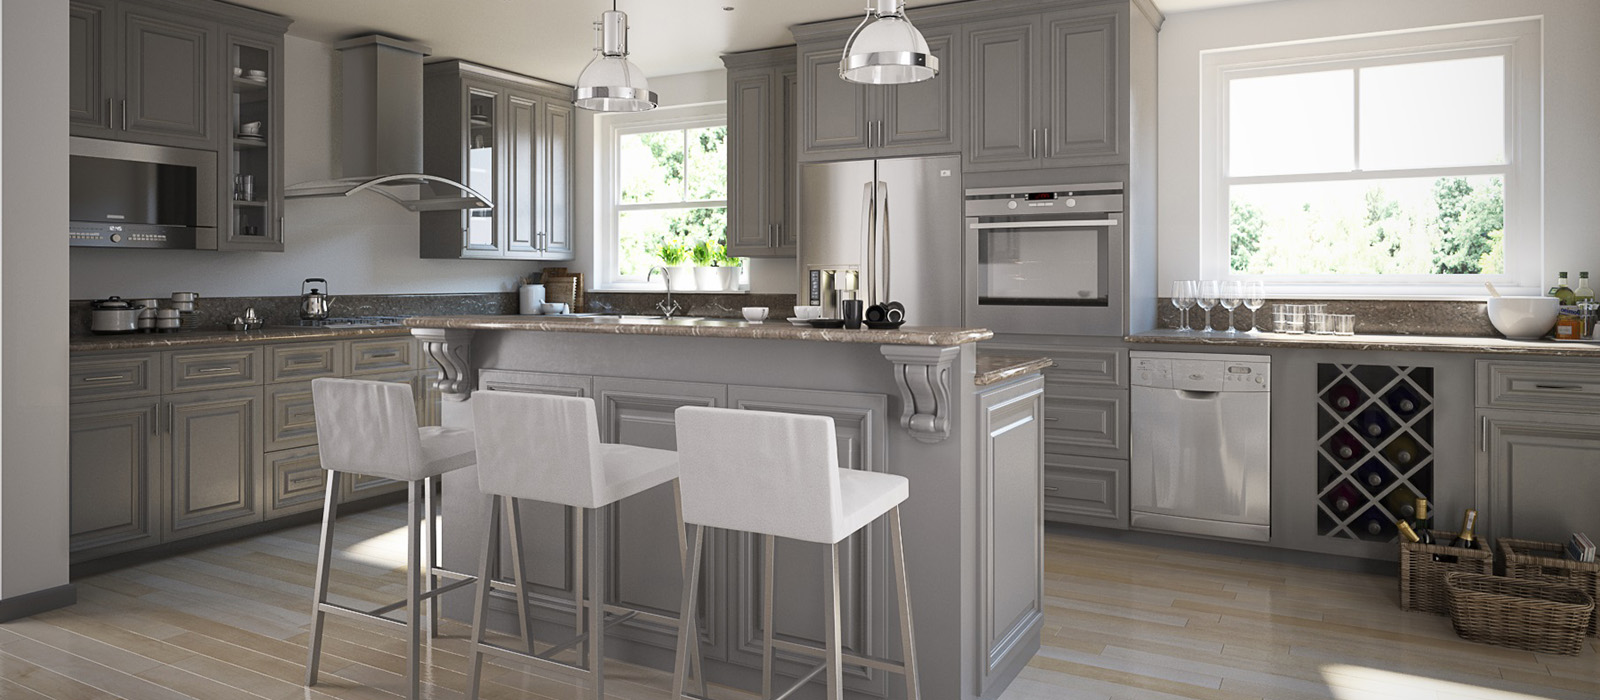 Willow Lane Cabinets Willow Lane Cabinetry